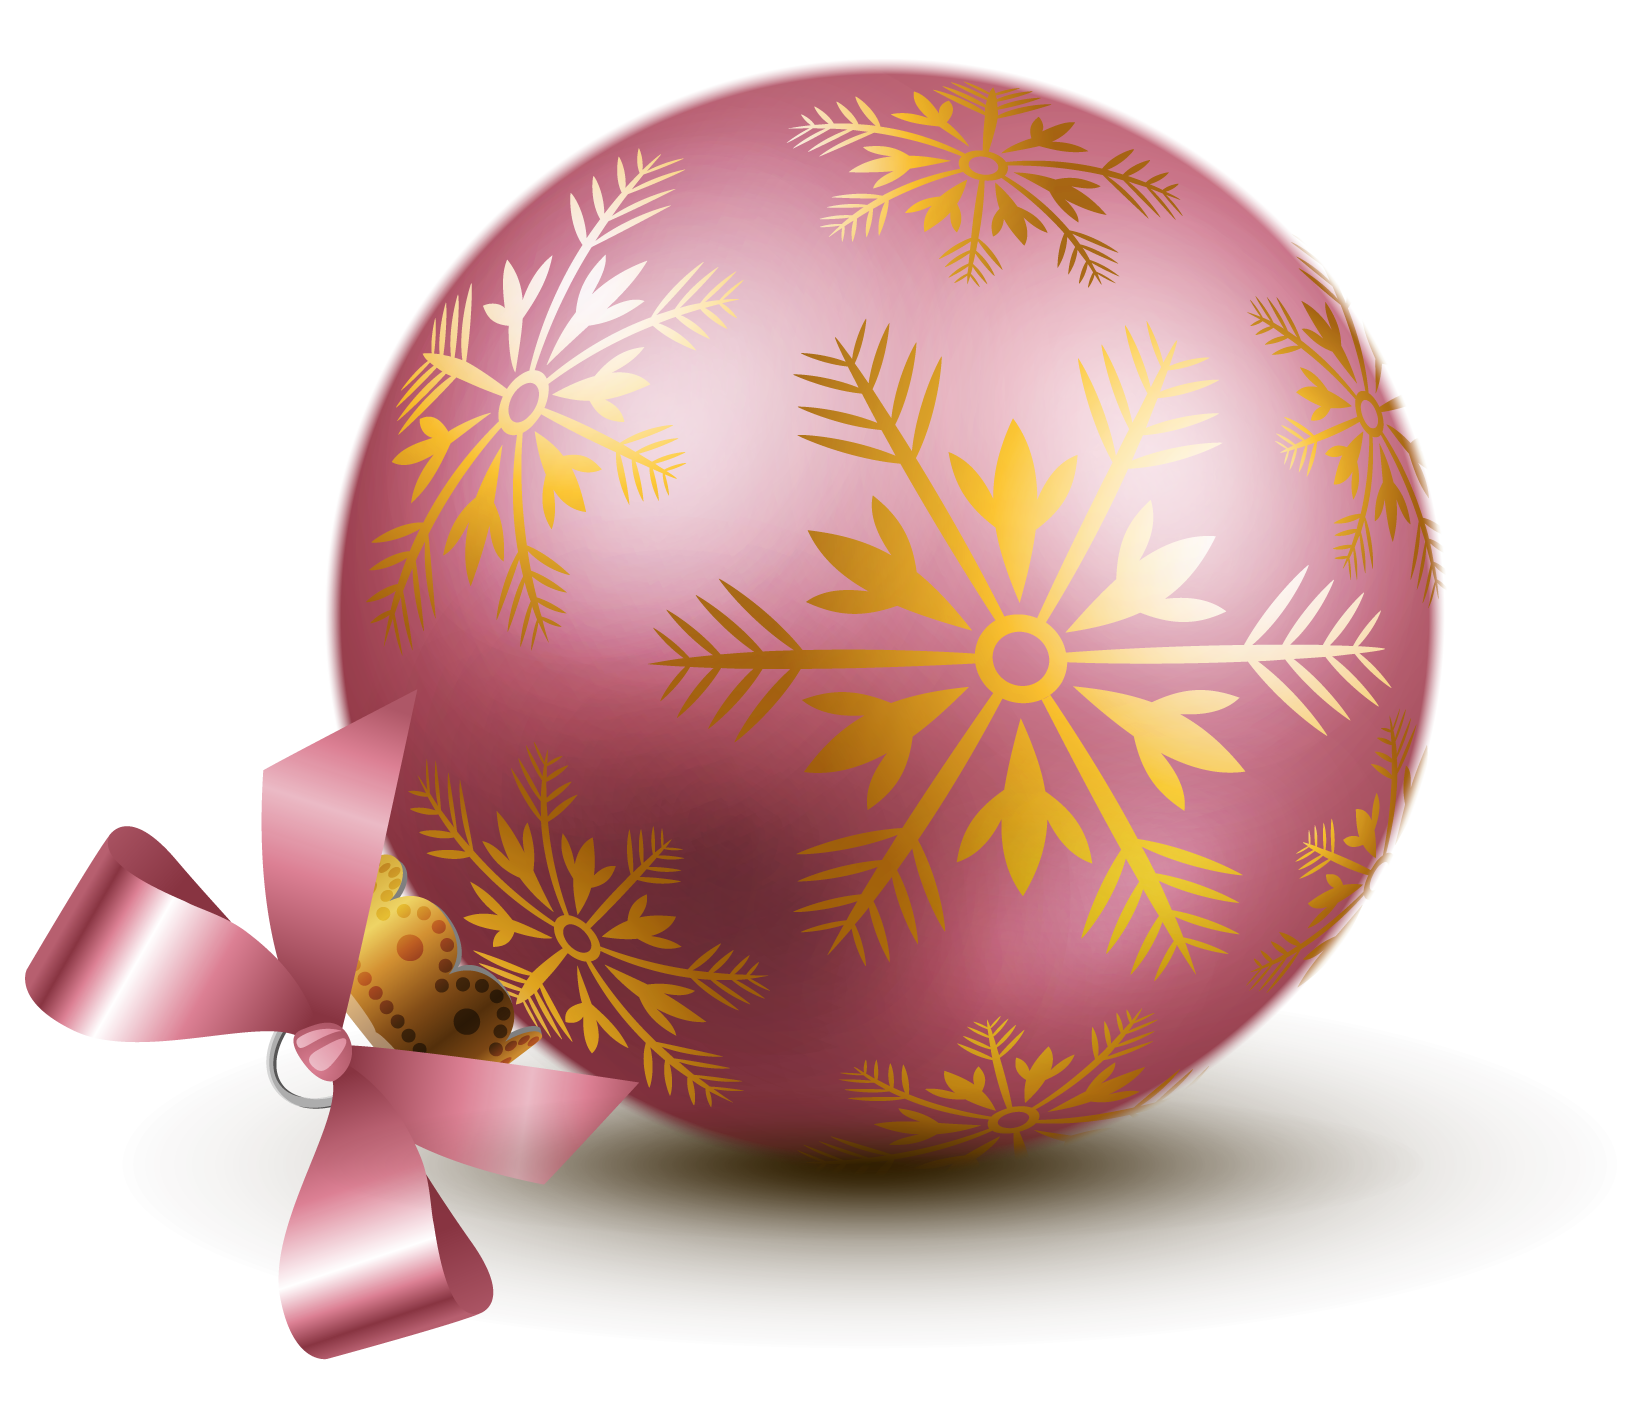 Transparent Pink Christmas Ball Ornaments Clipart.